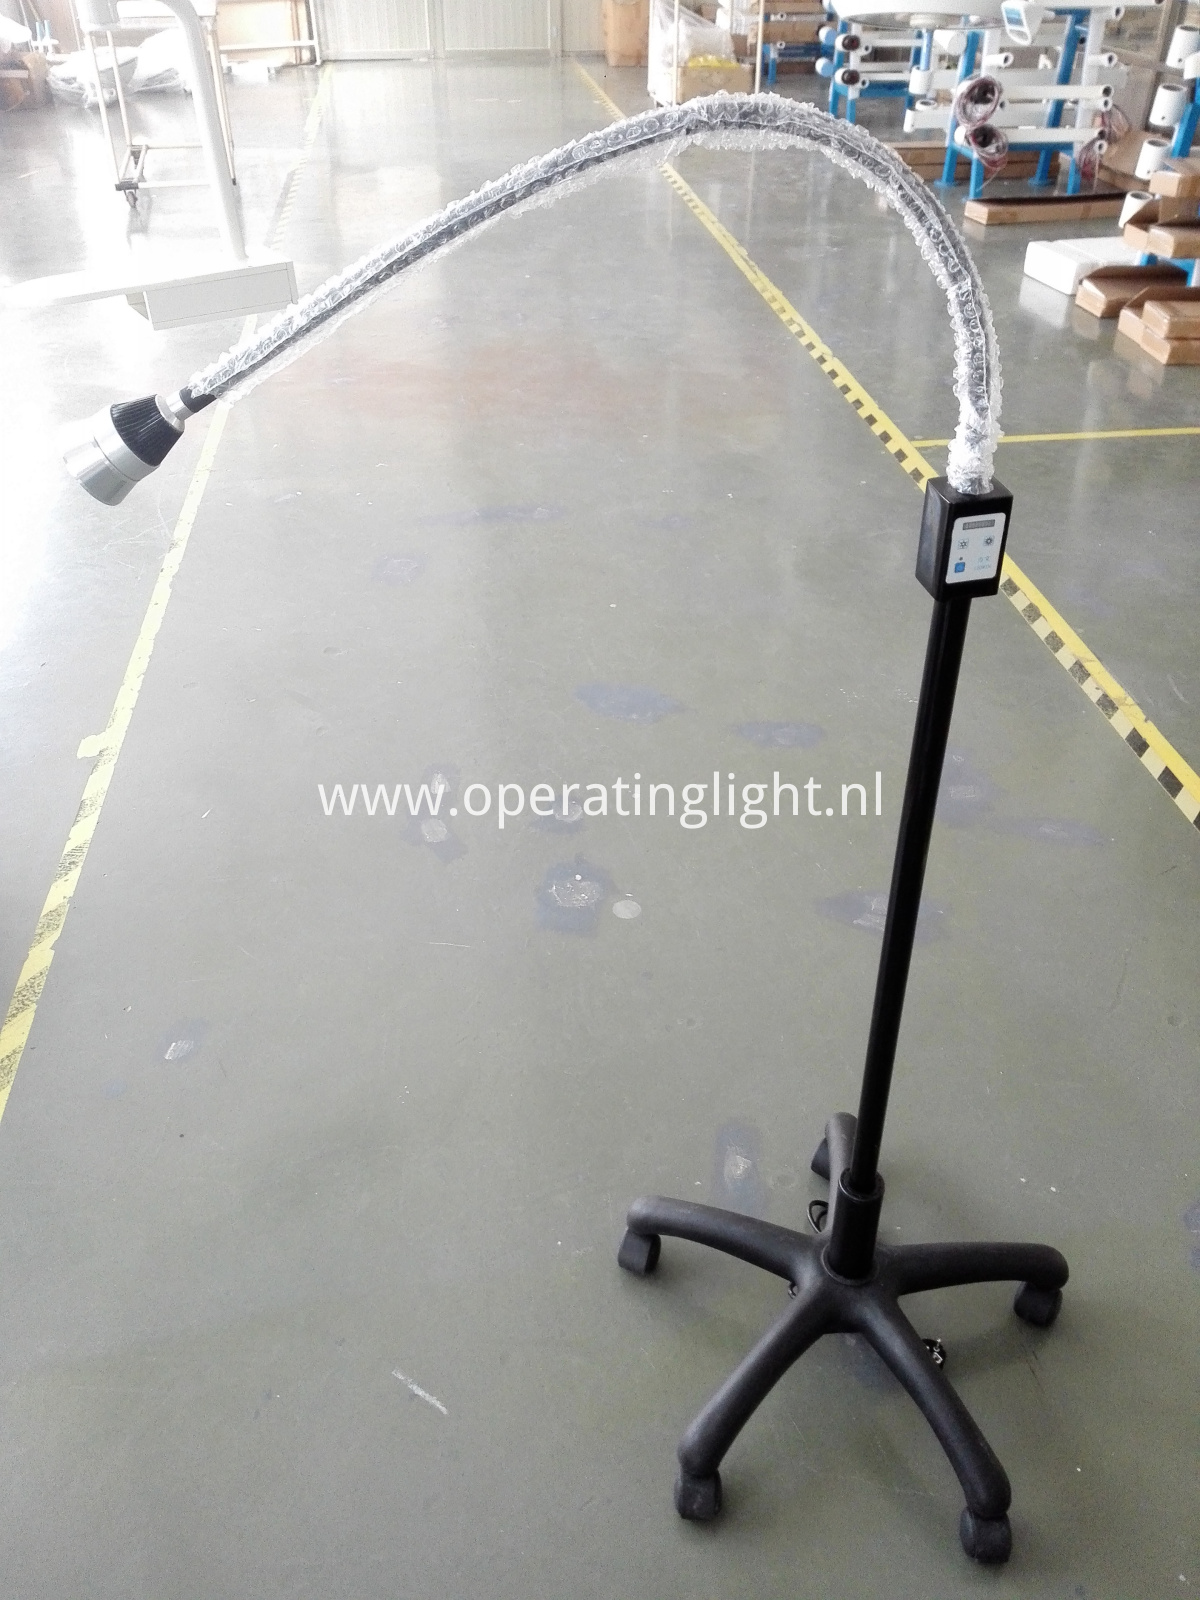 Neck adjustable examination light